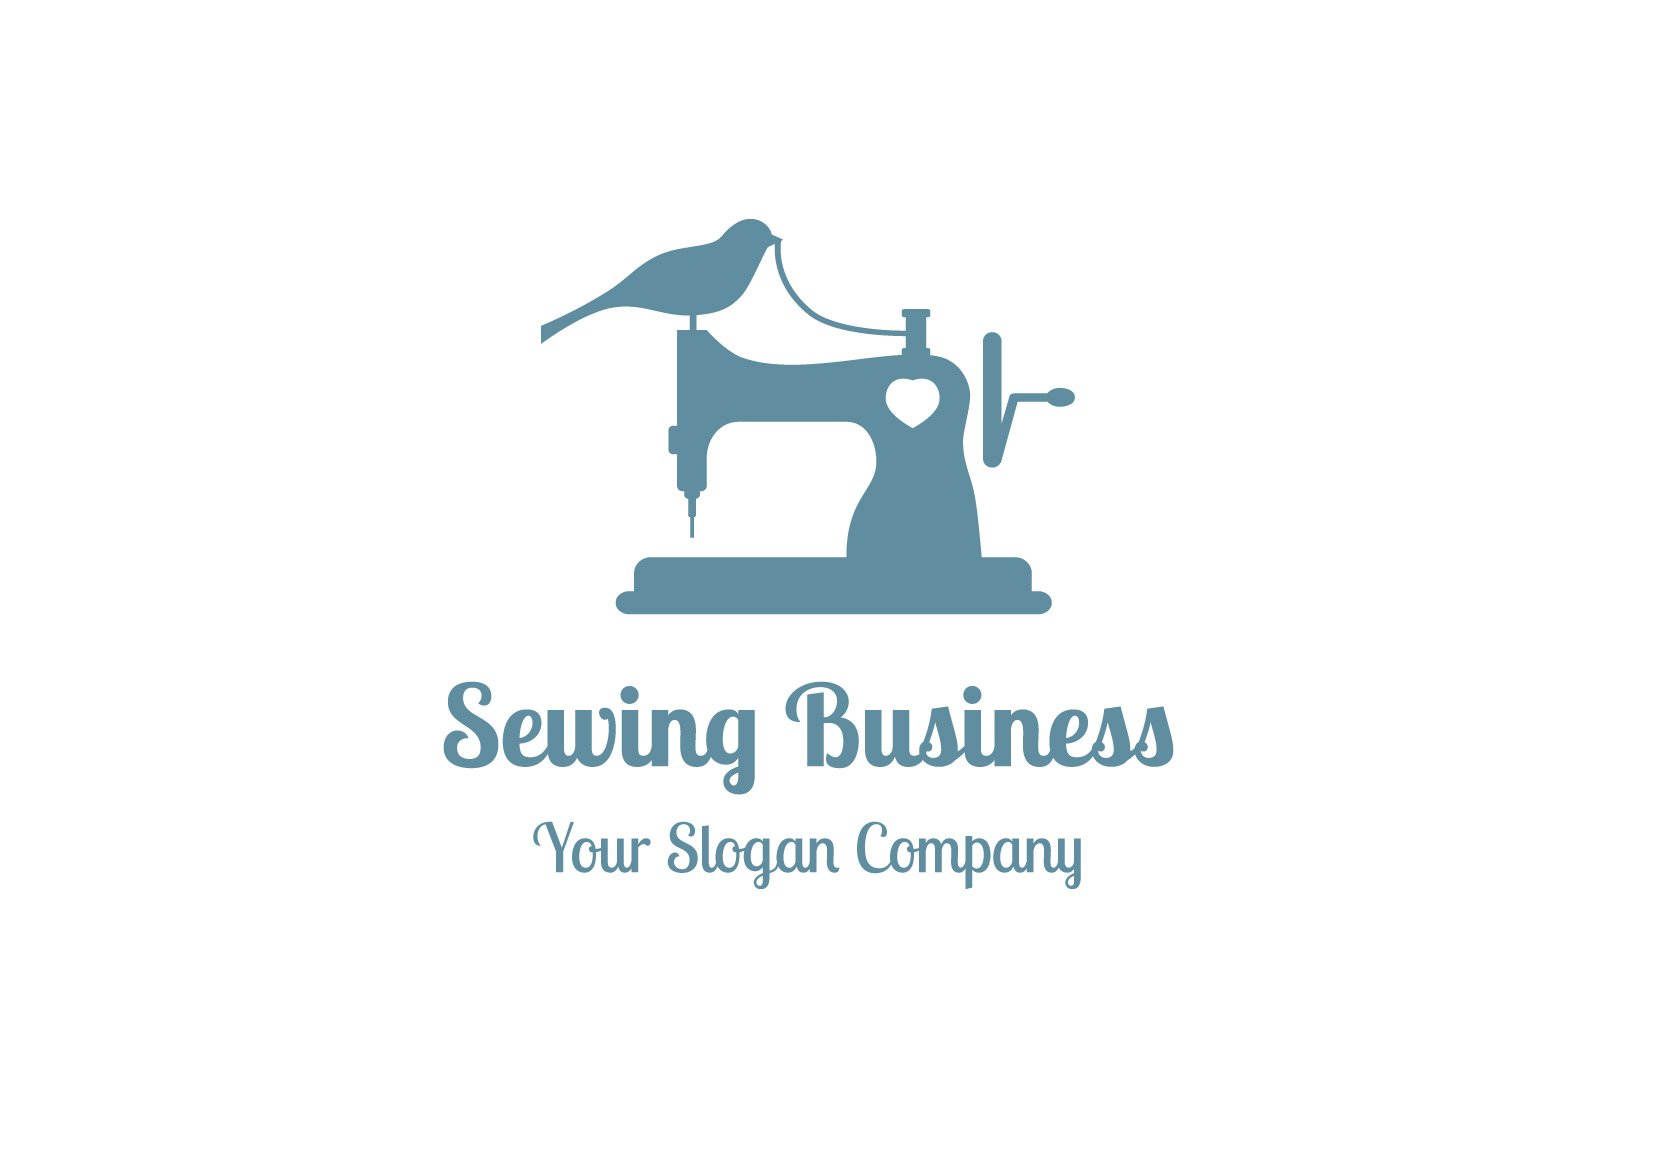 Sewing business logo logo templates creative market cheaphphosting Images